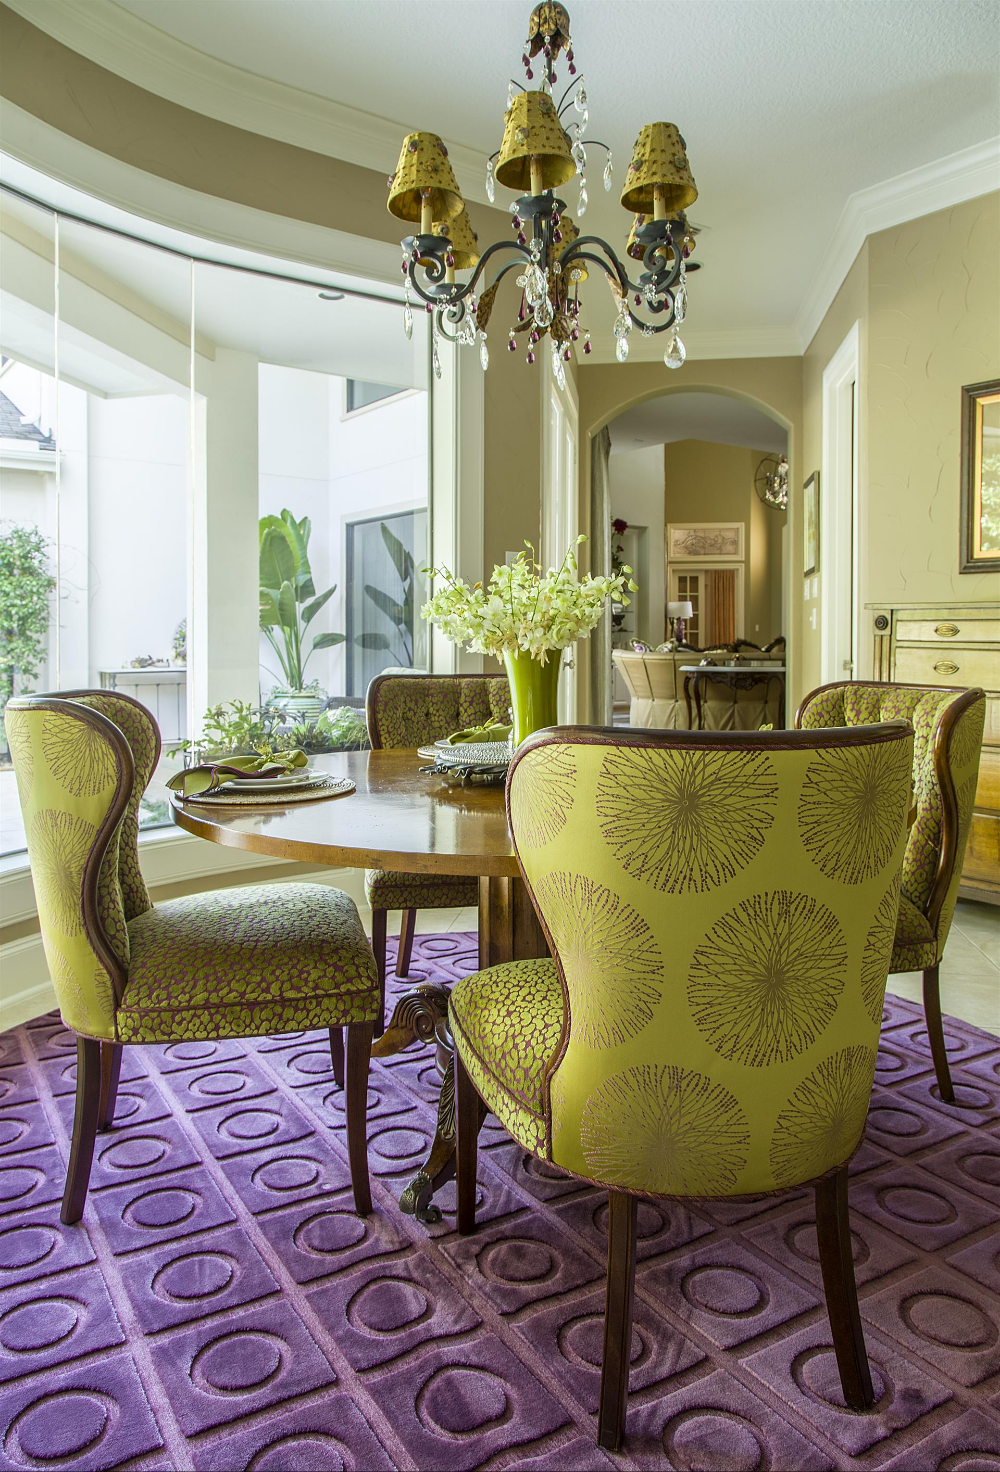 Striking Spunky And Sophisticaedby Design Interiors Houston Created Amazing Spaces With Vi Interior Design Dining Room Interior Design Office Furniture Design